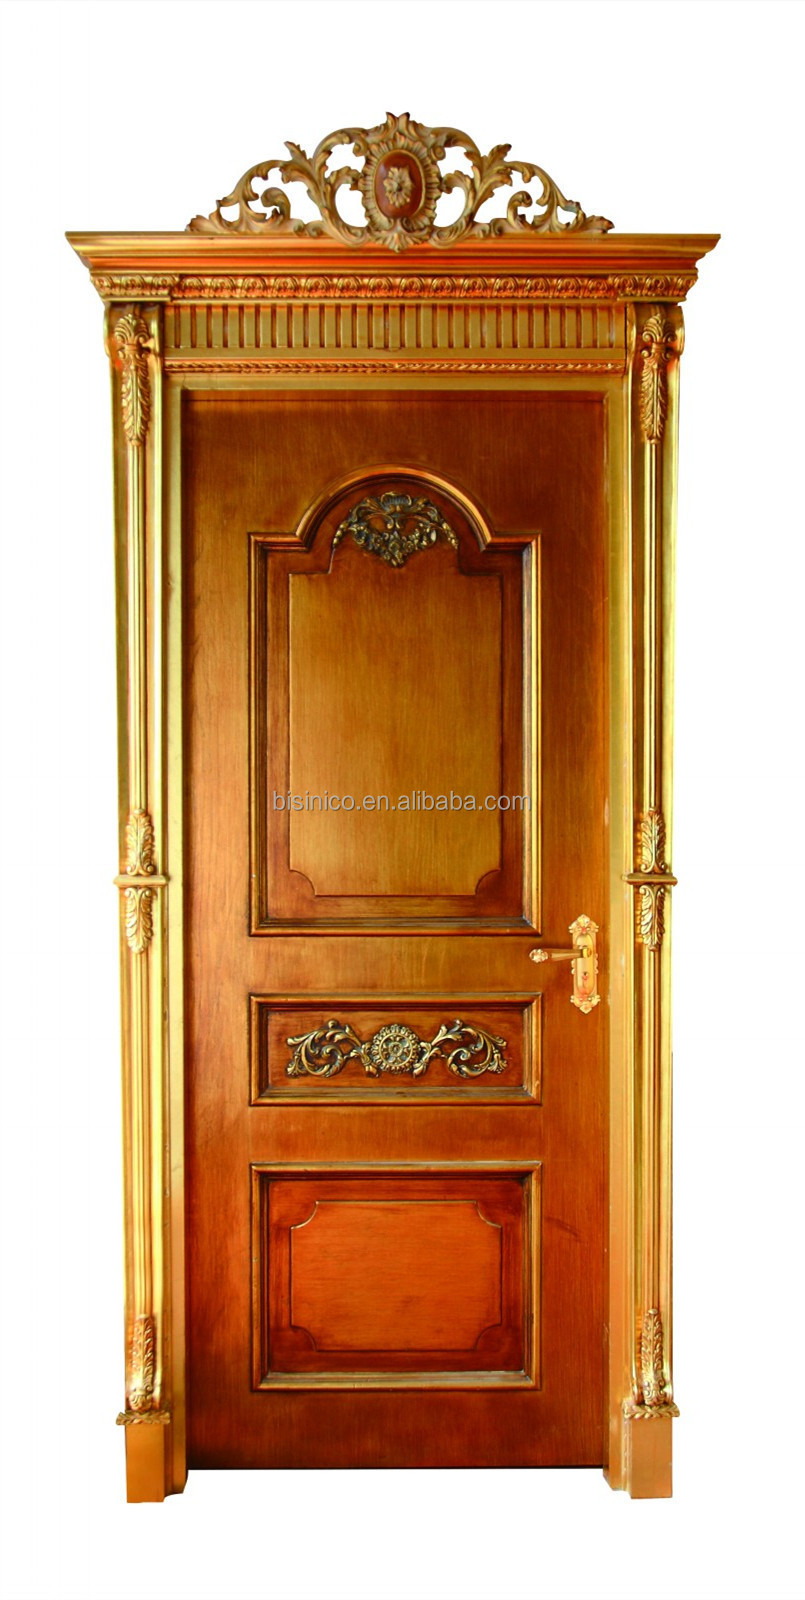 Antique interior doors with glass - French Baroque Style Solid Wood Hand Carved Interior Door High Quality Antique Finish Beige Decorative